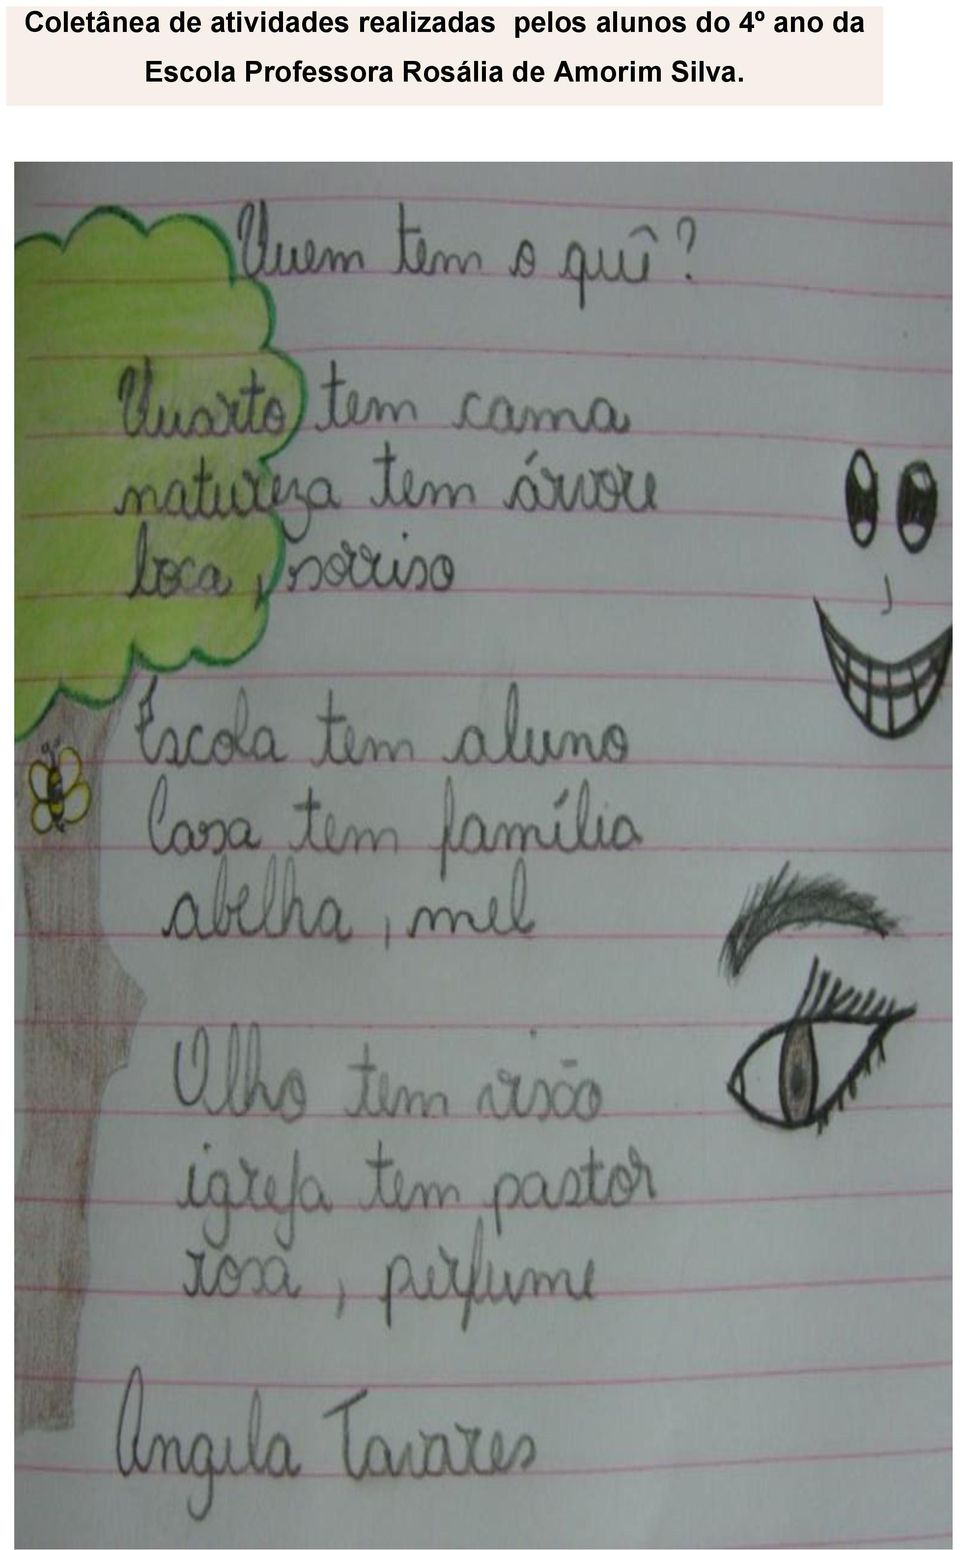 do 4º ano da Escola